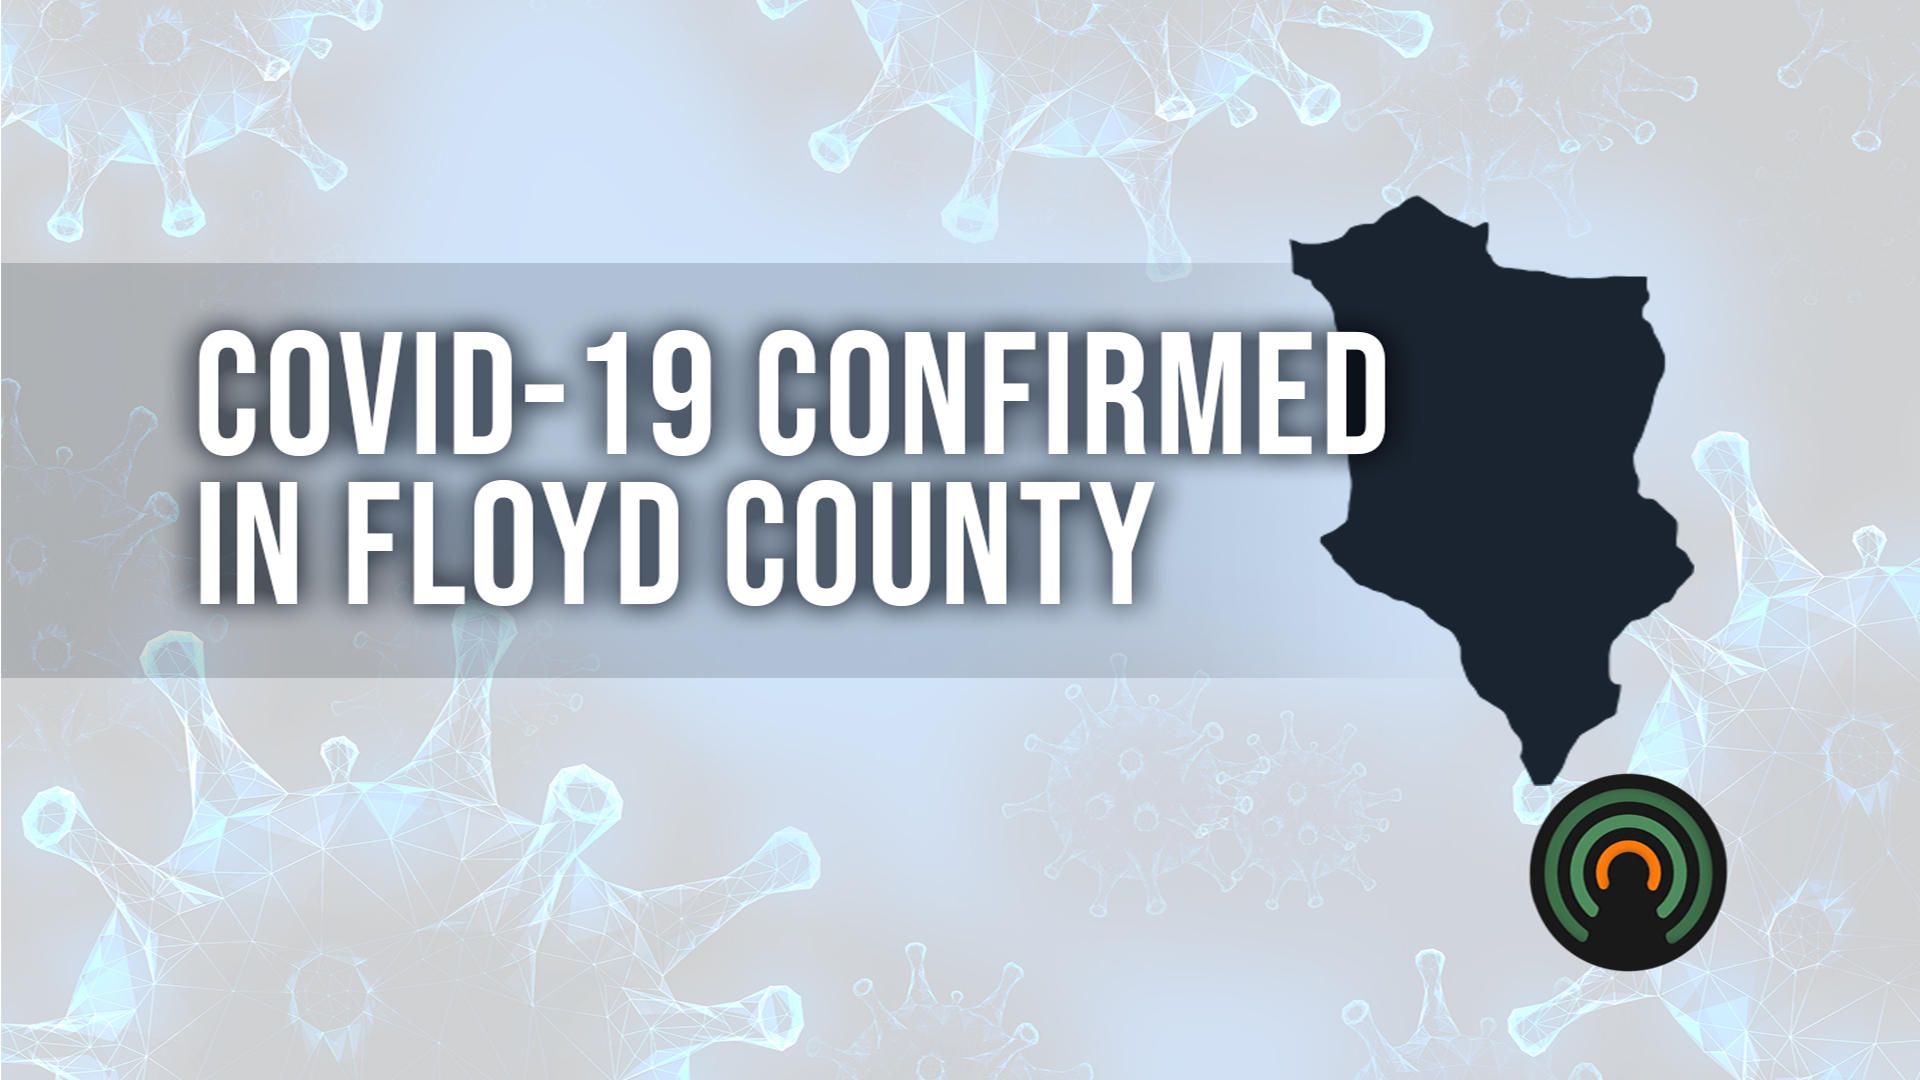 Floyd County health officials confirm 2 new COVID-19 cases in the county